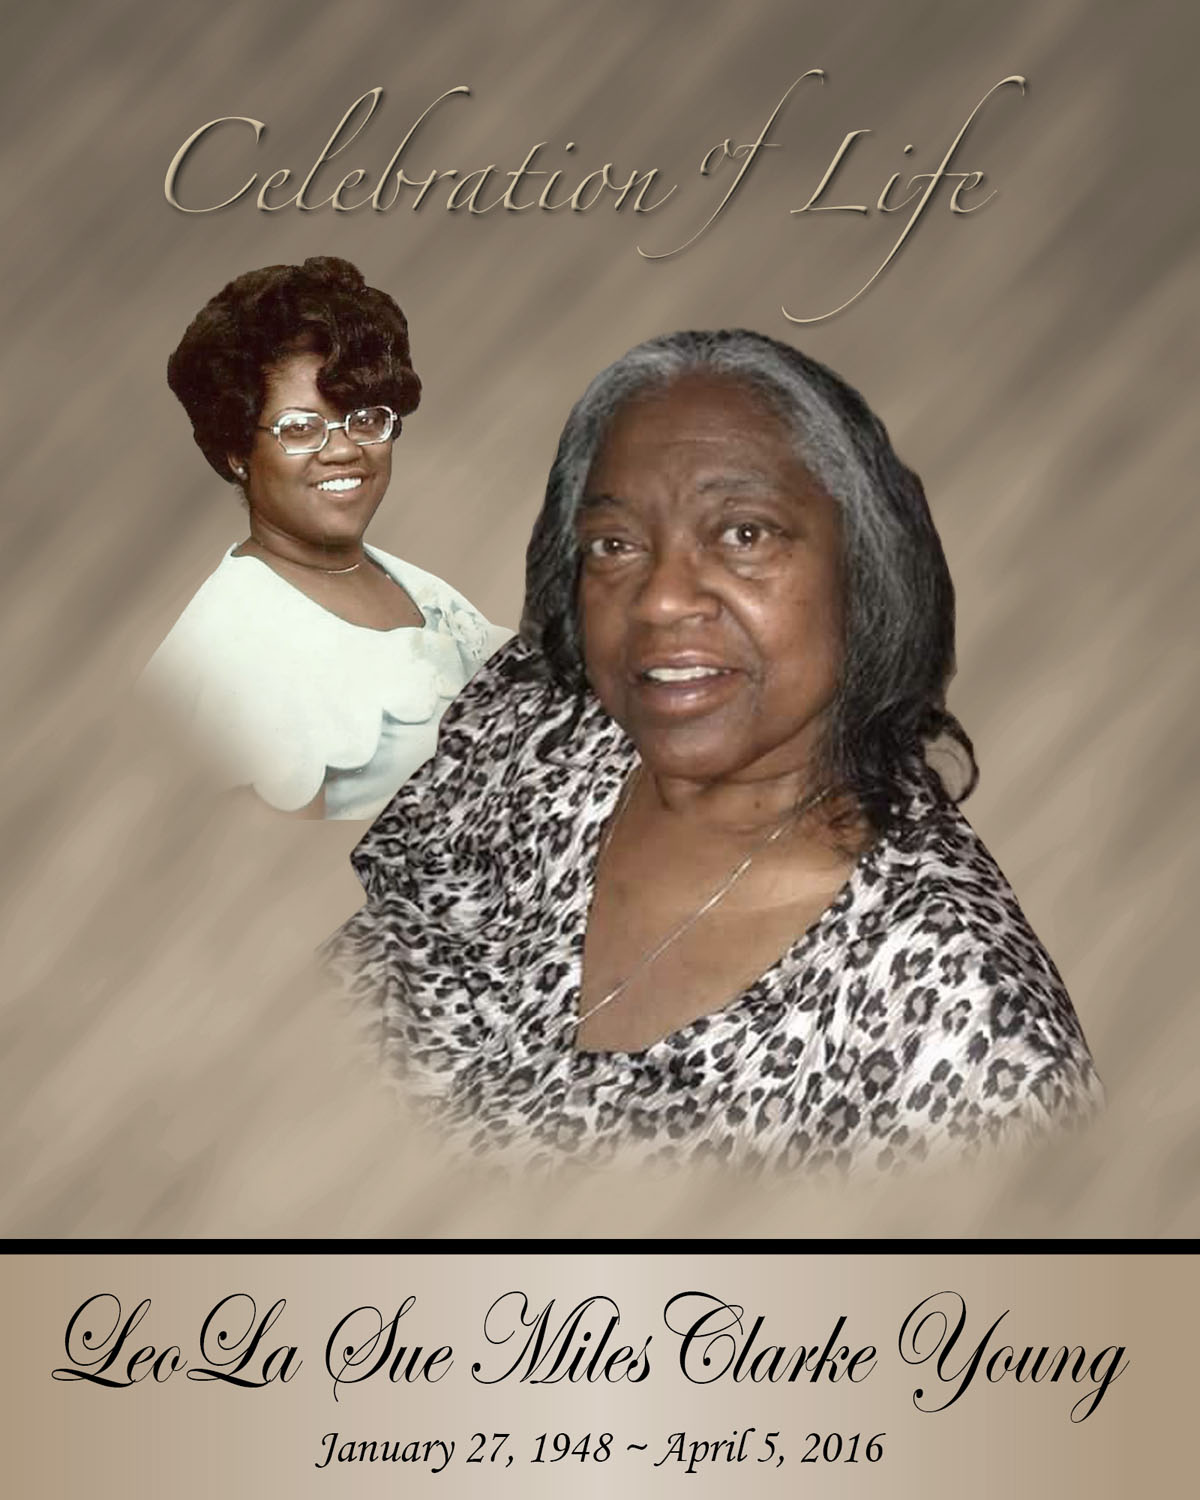 In Loving Memory of Leola Sue Miles Clarke Young